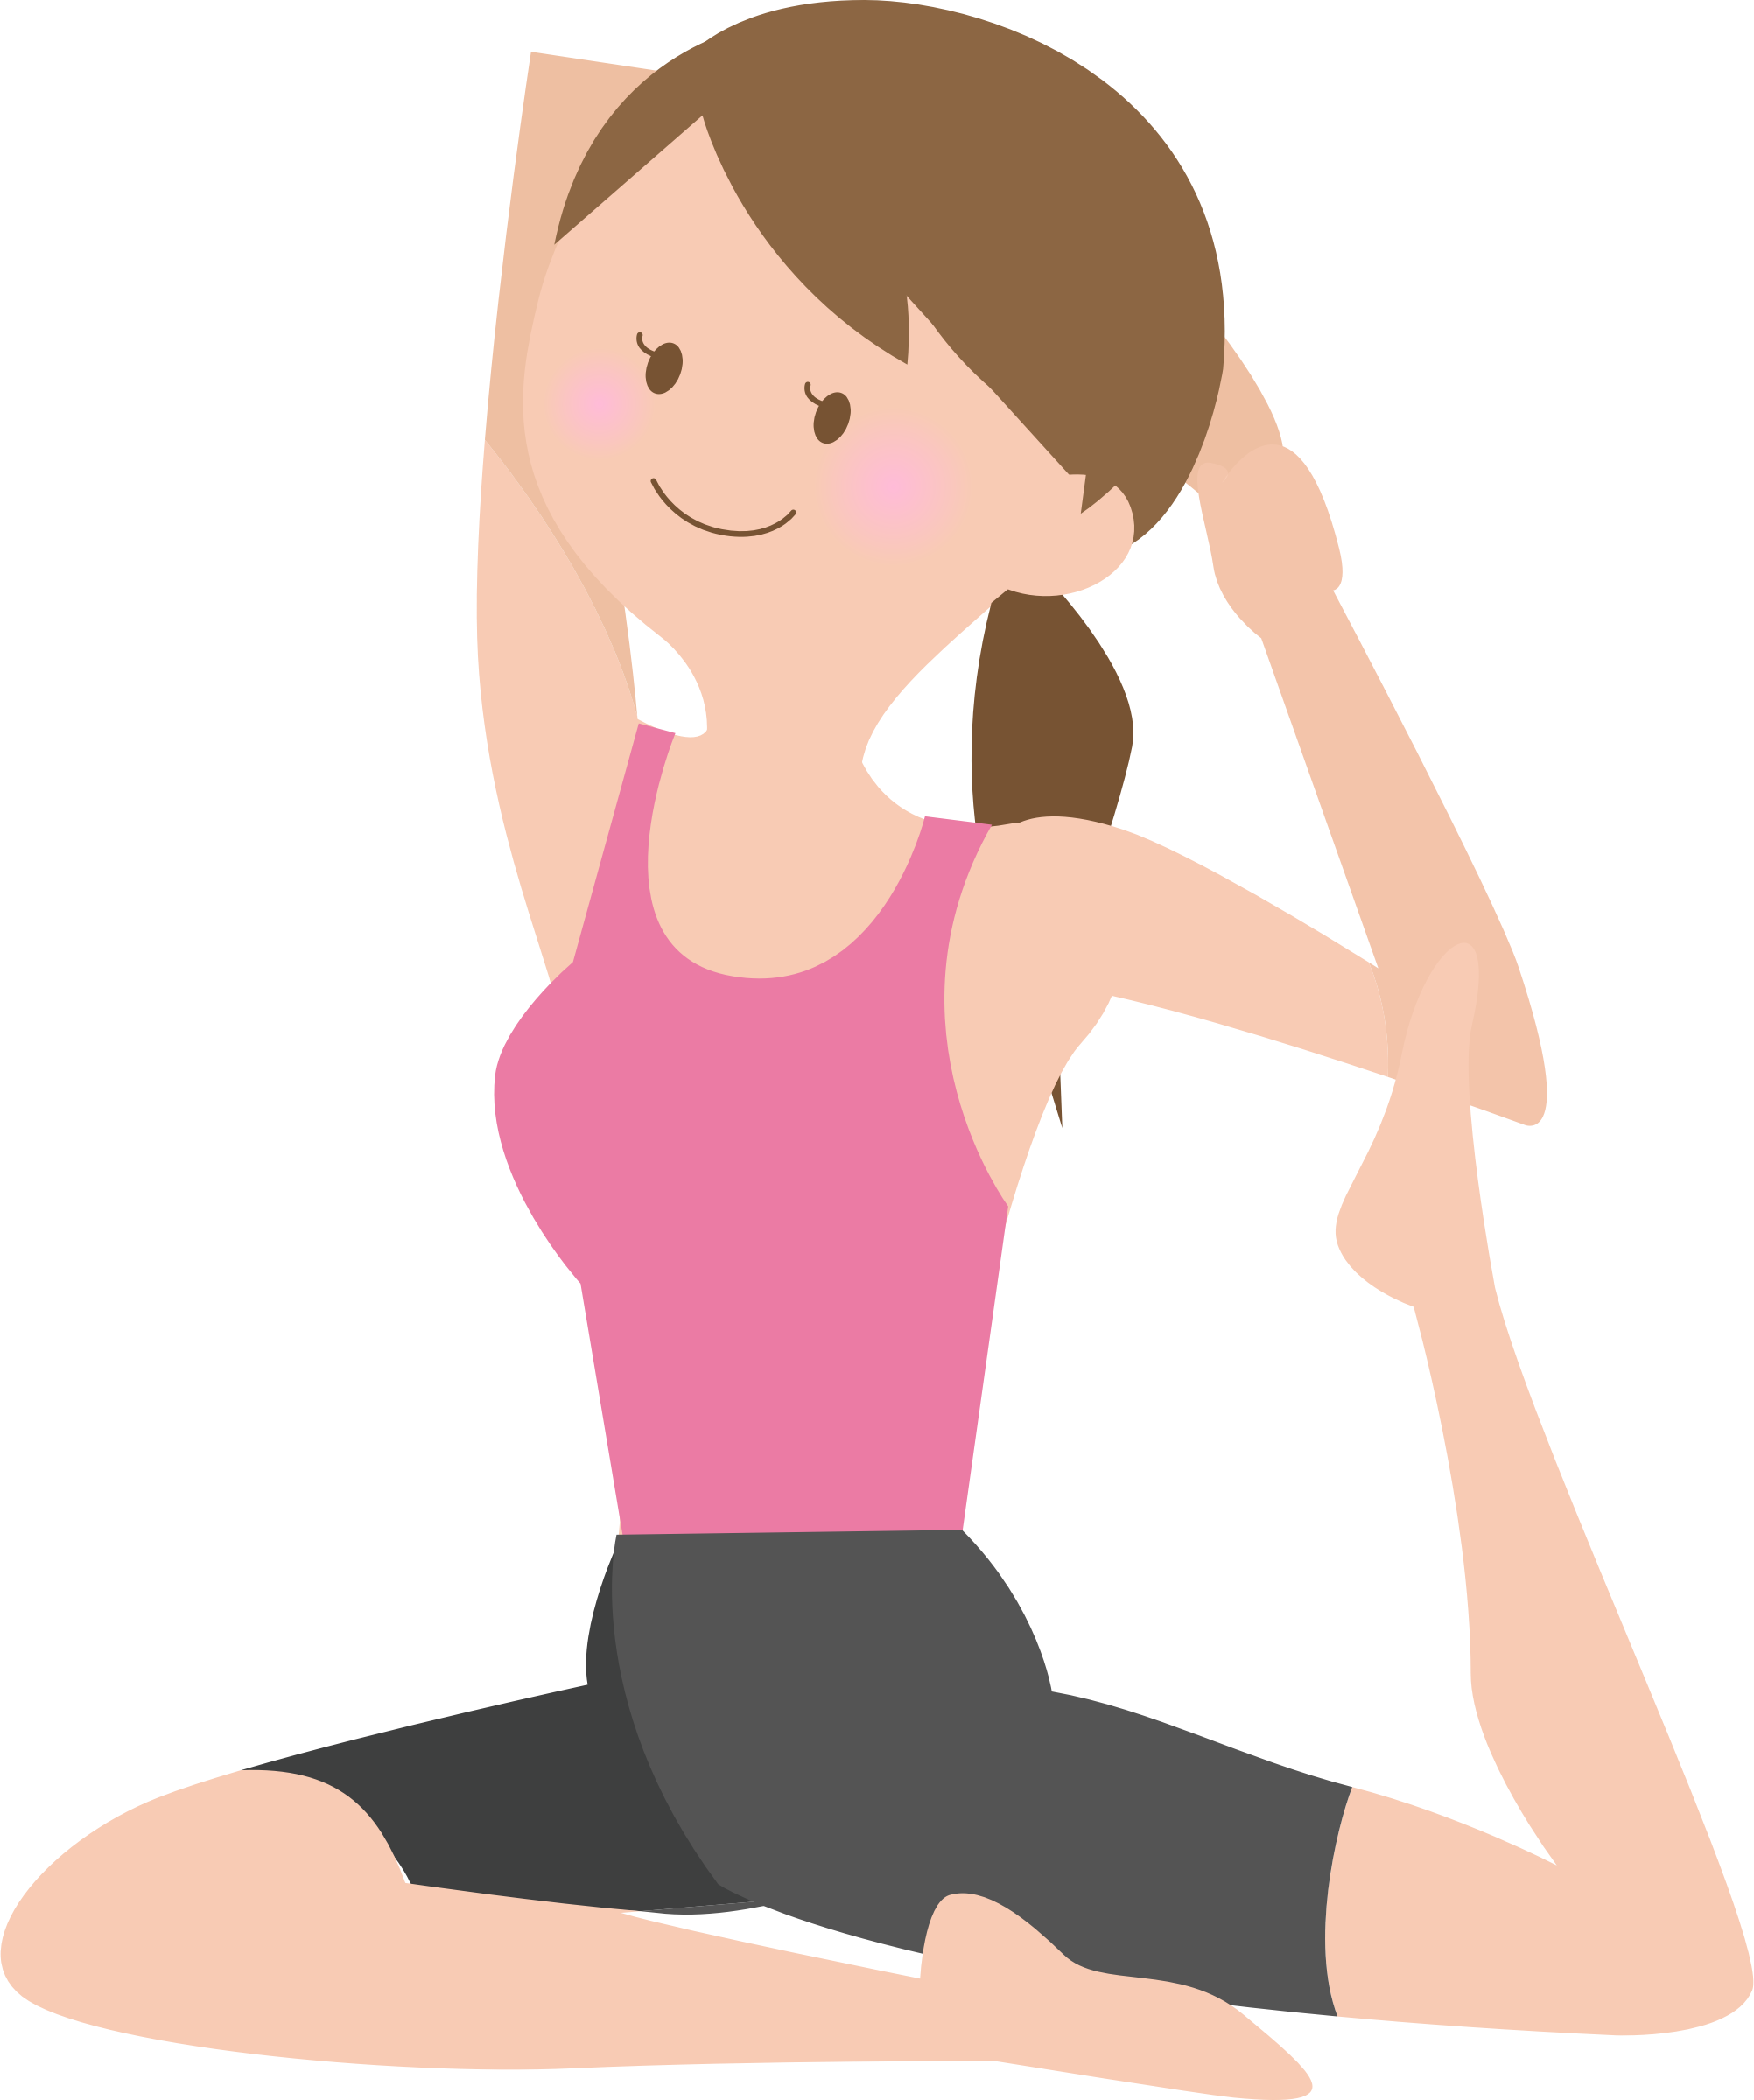 571 Stretching free clipart.